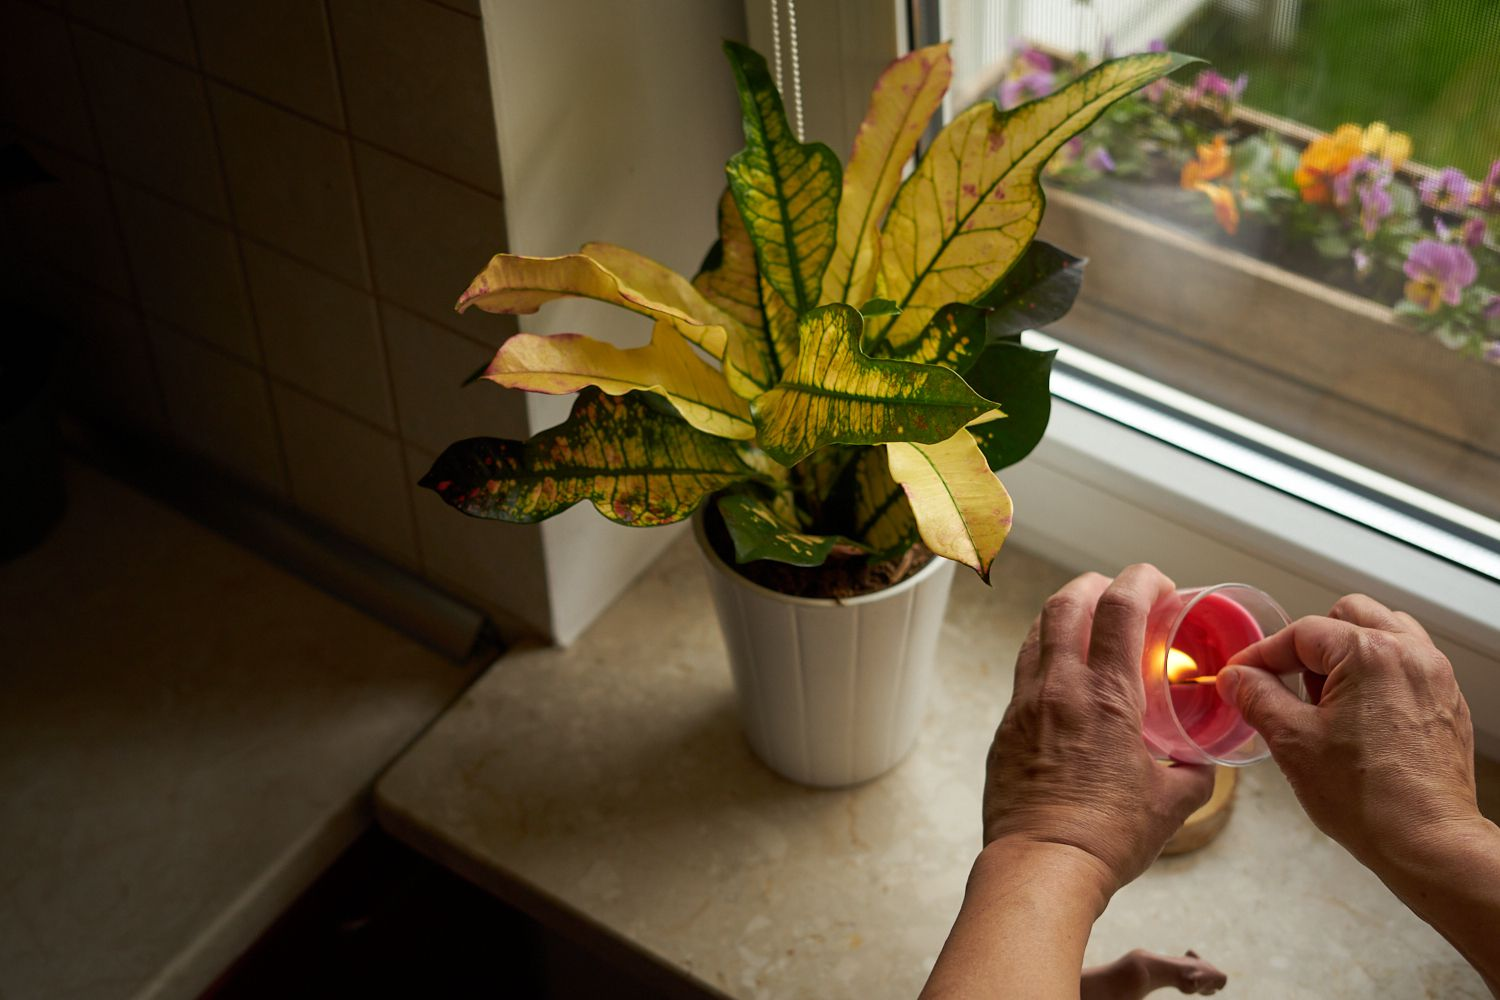 yellow and green Croton plant in white pot near windowsill while person lights candle